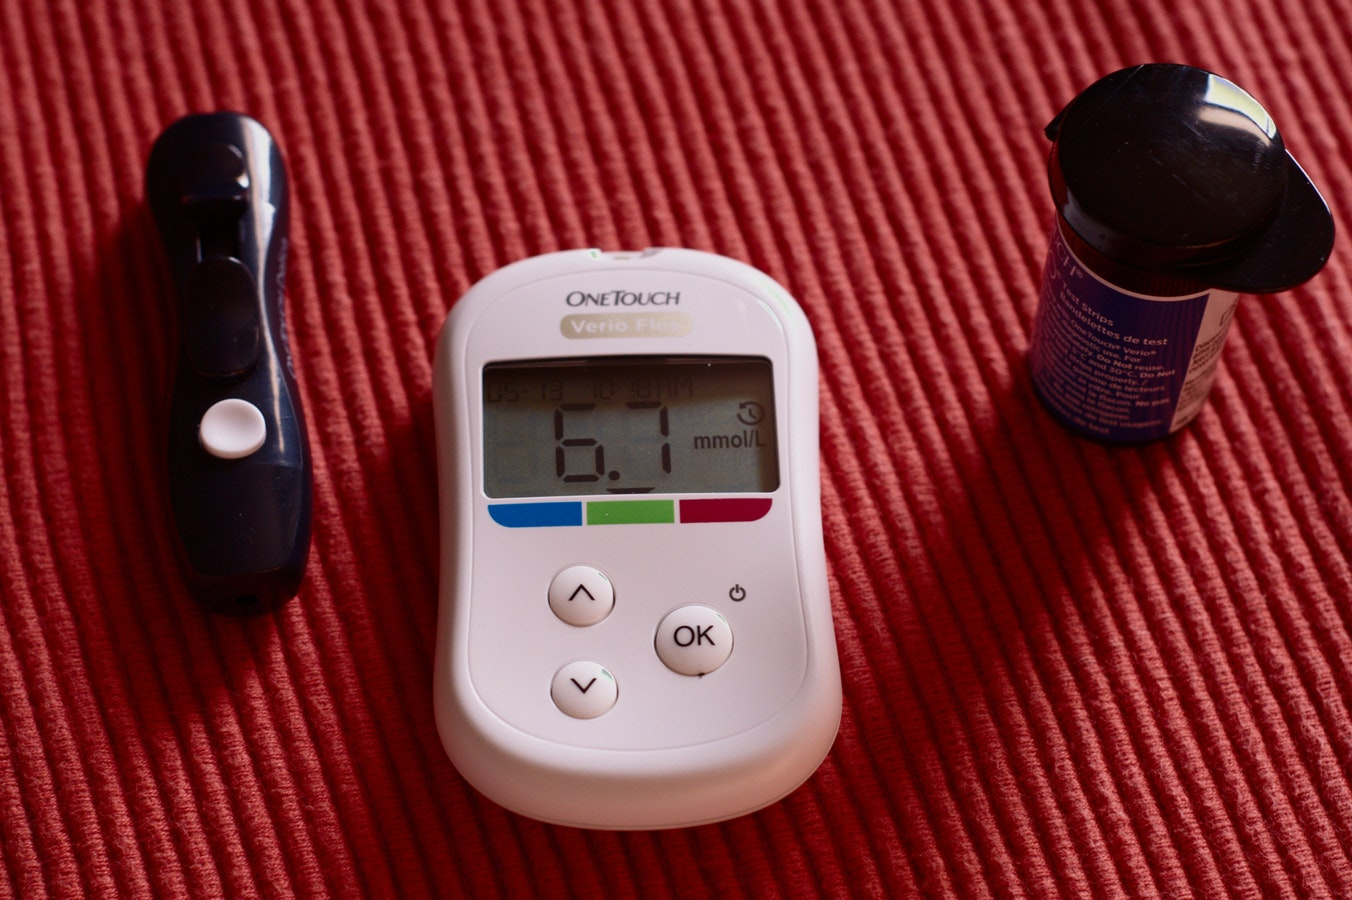 Monitors to help track blood sugar levels. It is important to track food eaten by seniors with diabetes.